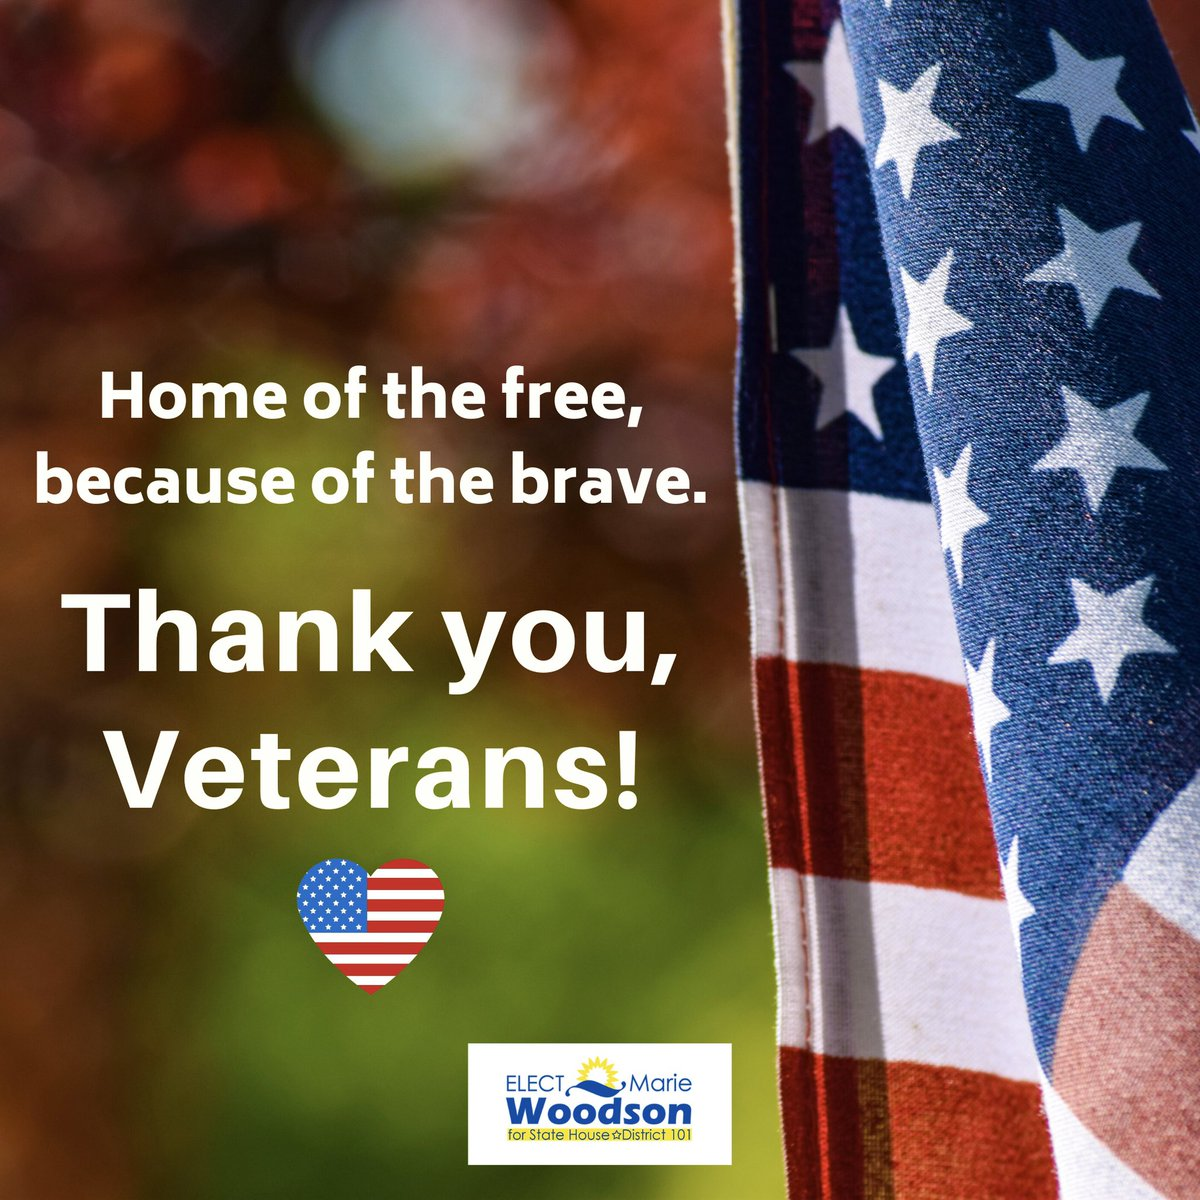 Let's express our gratitude by thanking our veterans who have sacrificed so much for us. We can never repay them;but, we can provide the support and resources to give them and their families a better quality of life! Let's do better by our veterans. Thank you to all our Veterans!